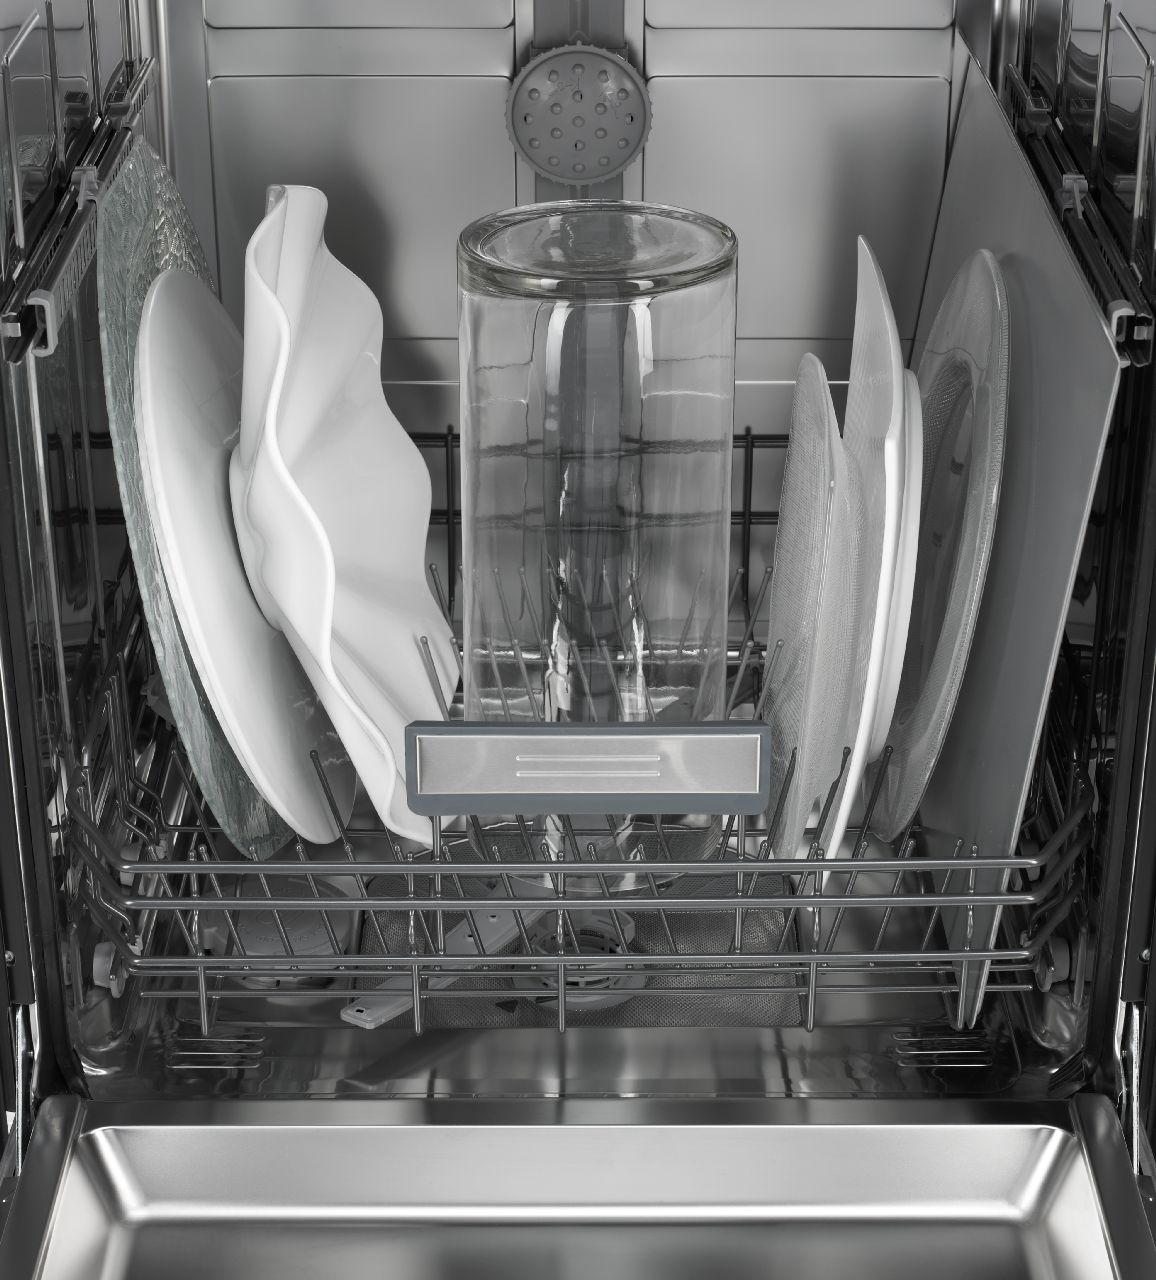 3 Reasons to Buy a Dishwasher with a Water Softener